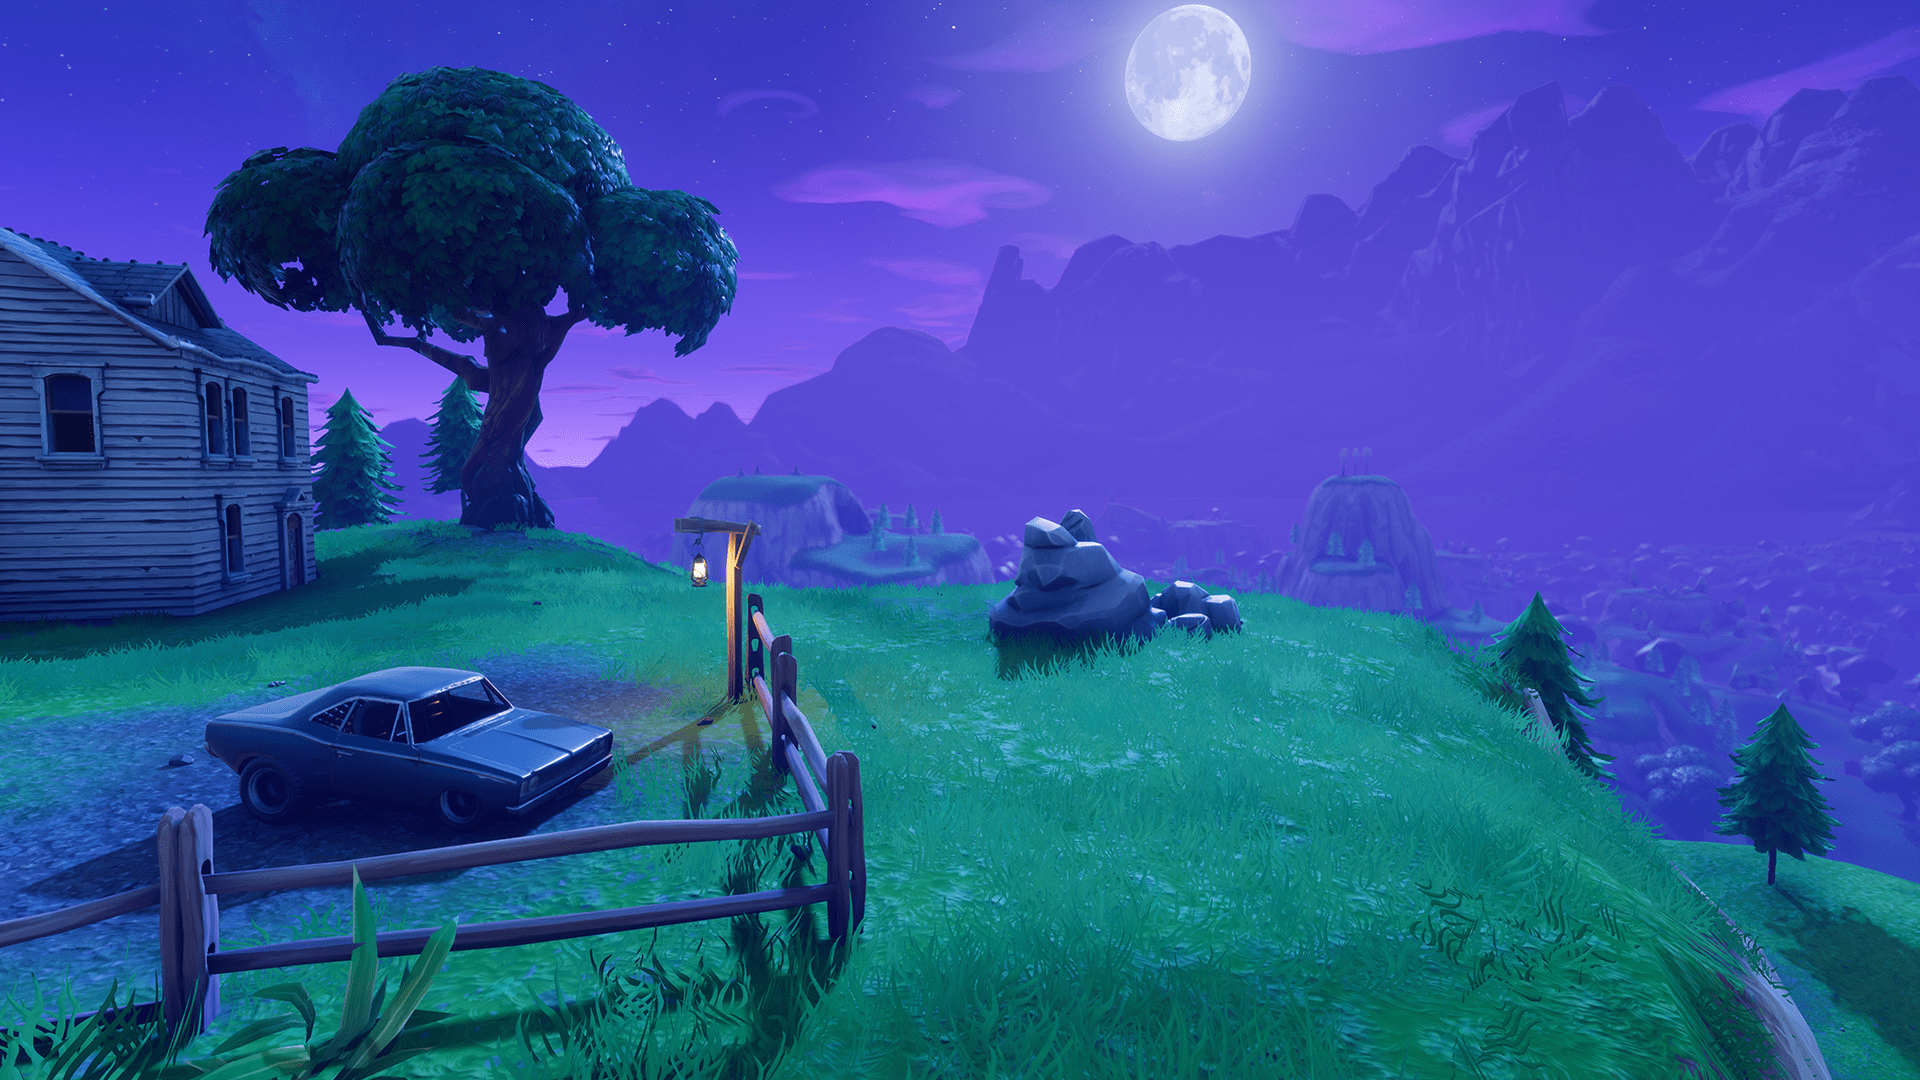 Fortnite HD Wallpapers and Background Images stmednet Beach 1920x1080